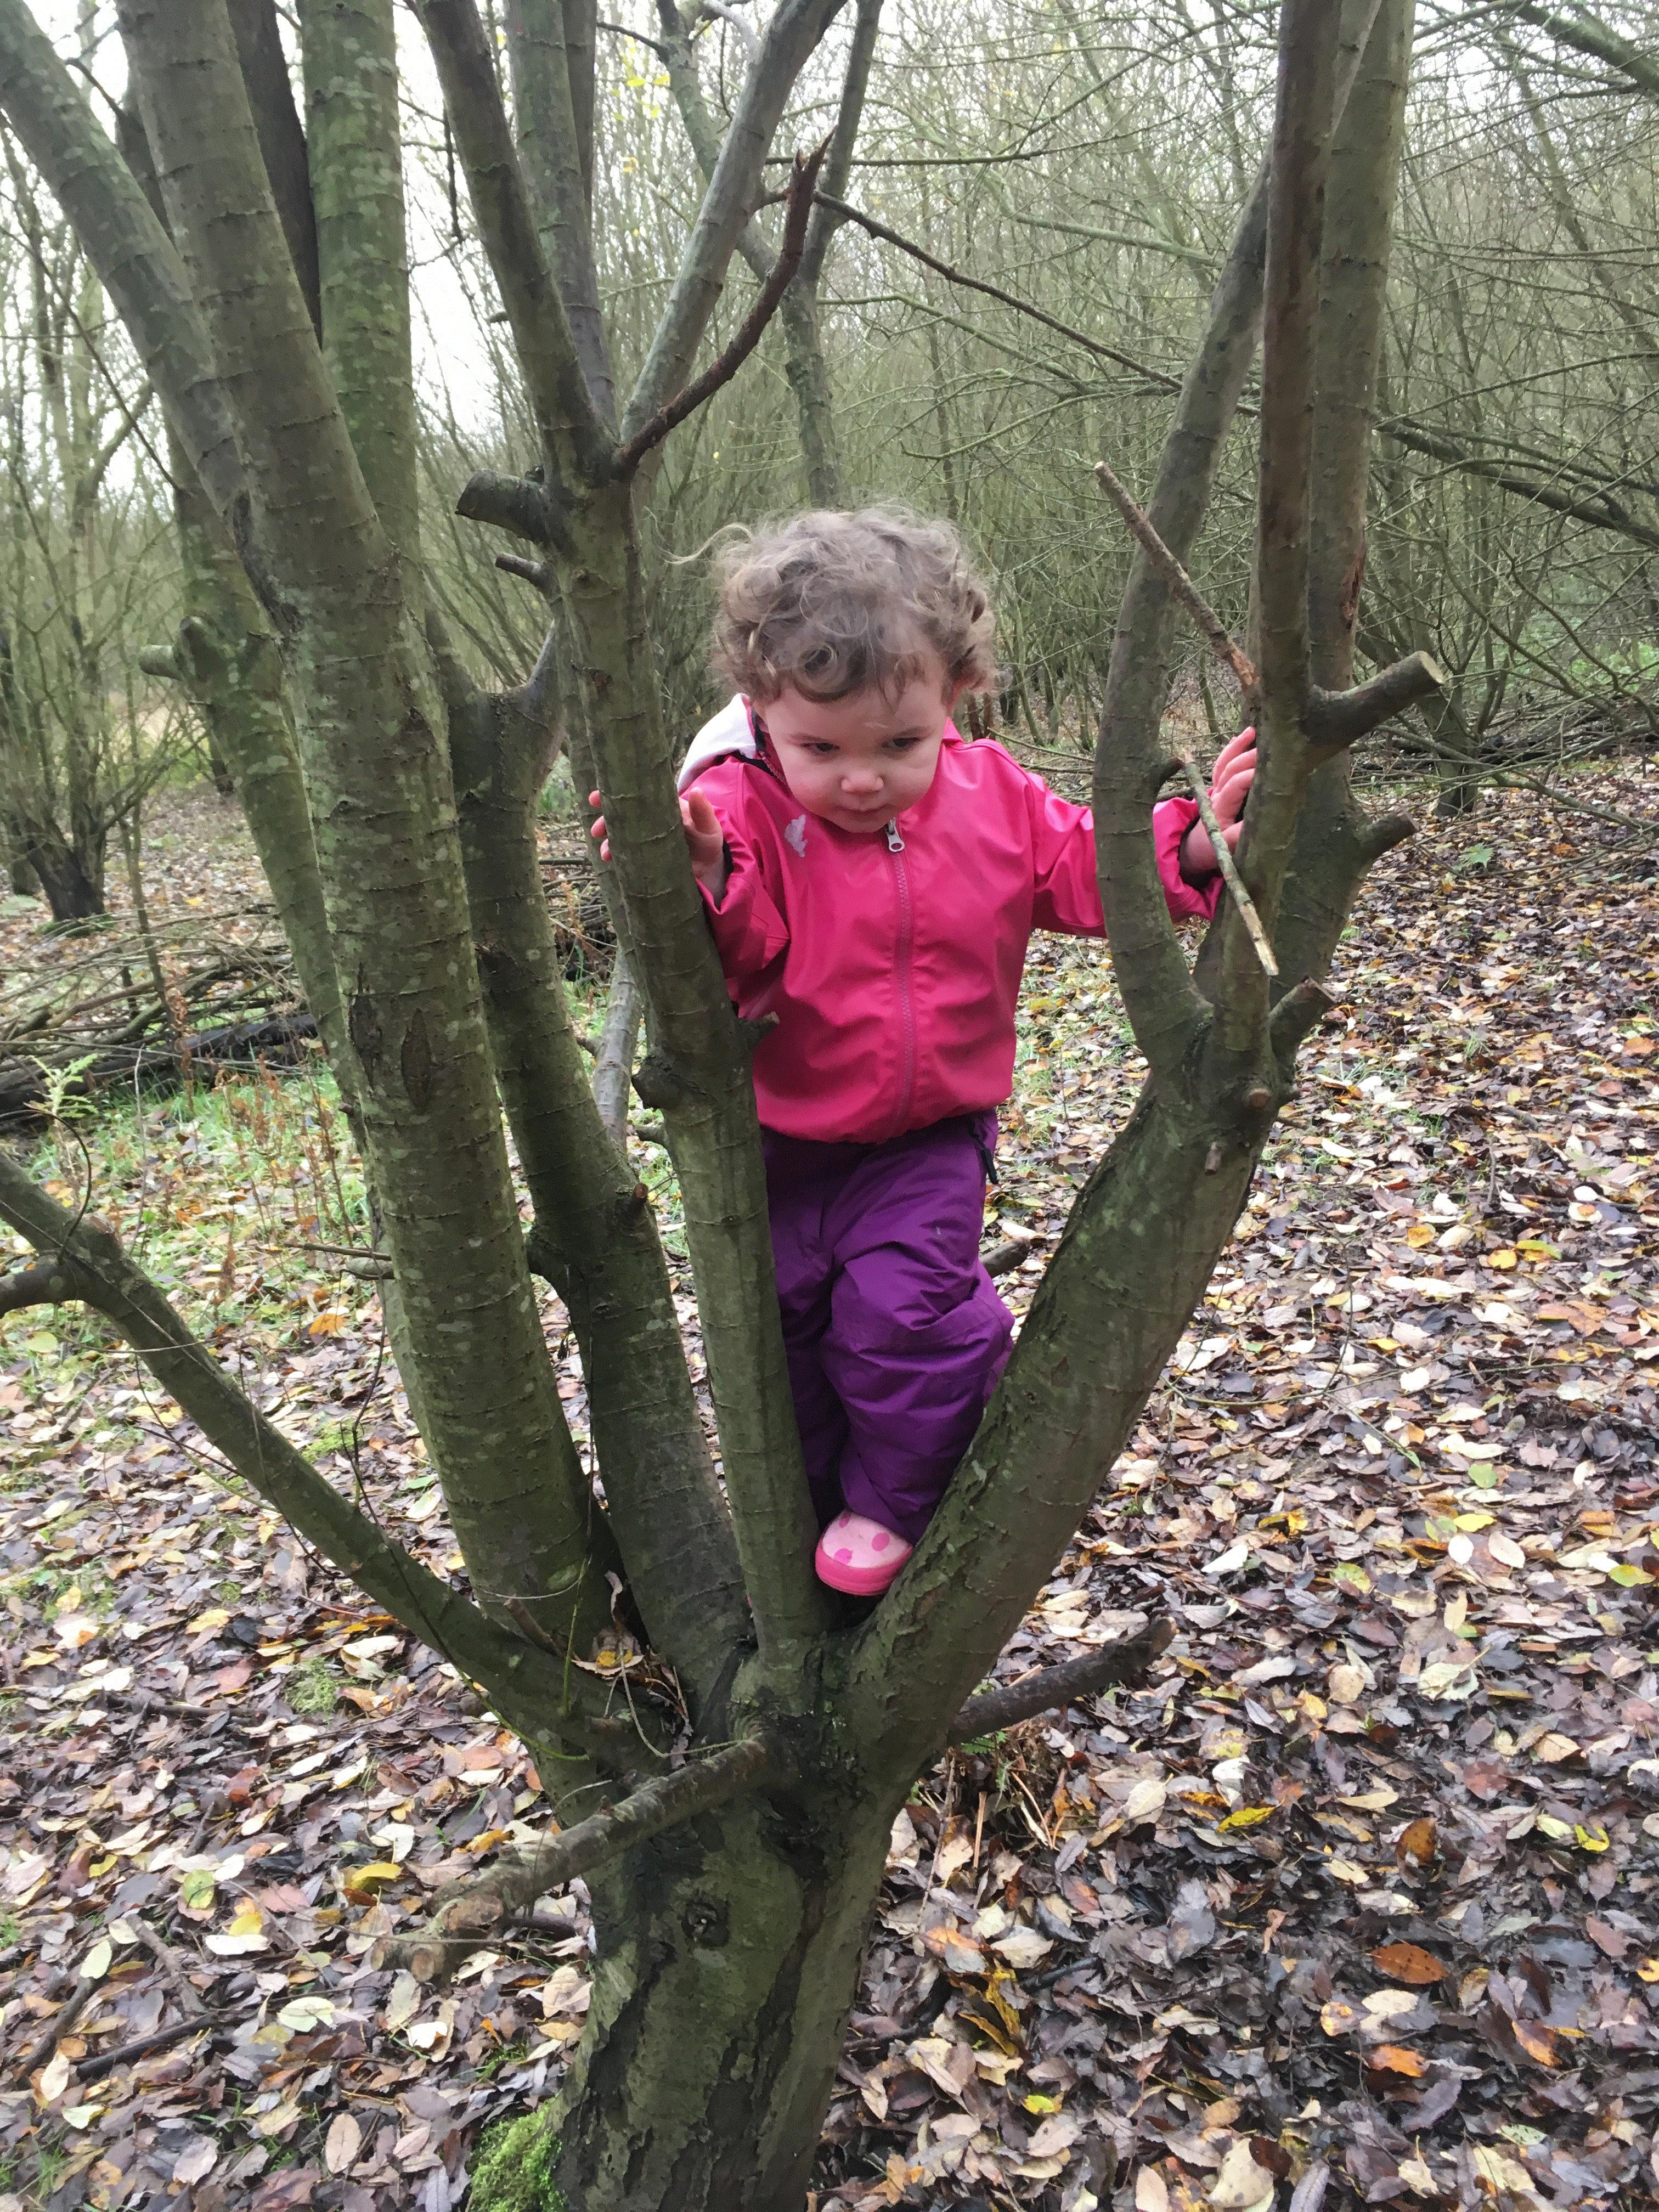 Small girl in a pink anorak climbing a tree